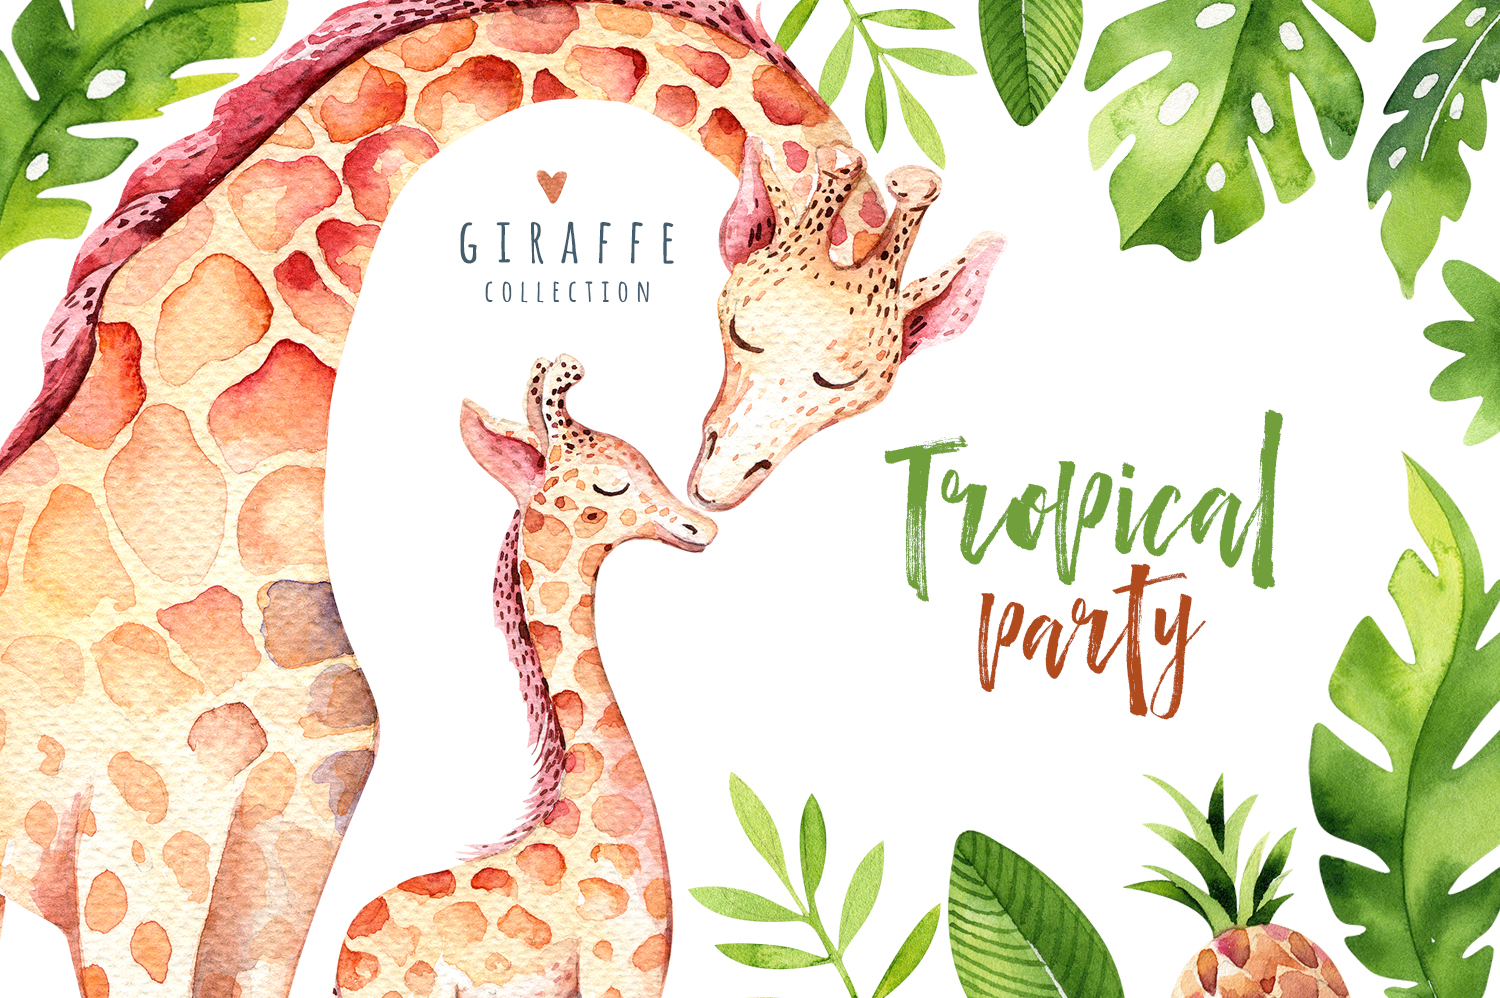 Giraffe collection. Tropical party example image 1